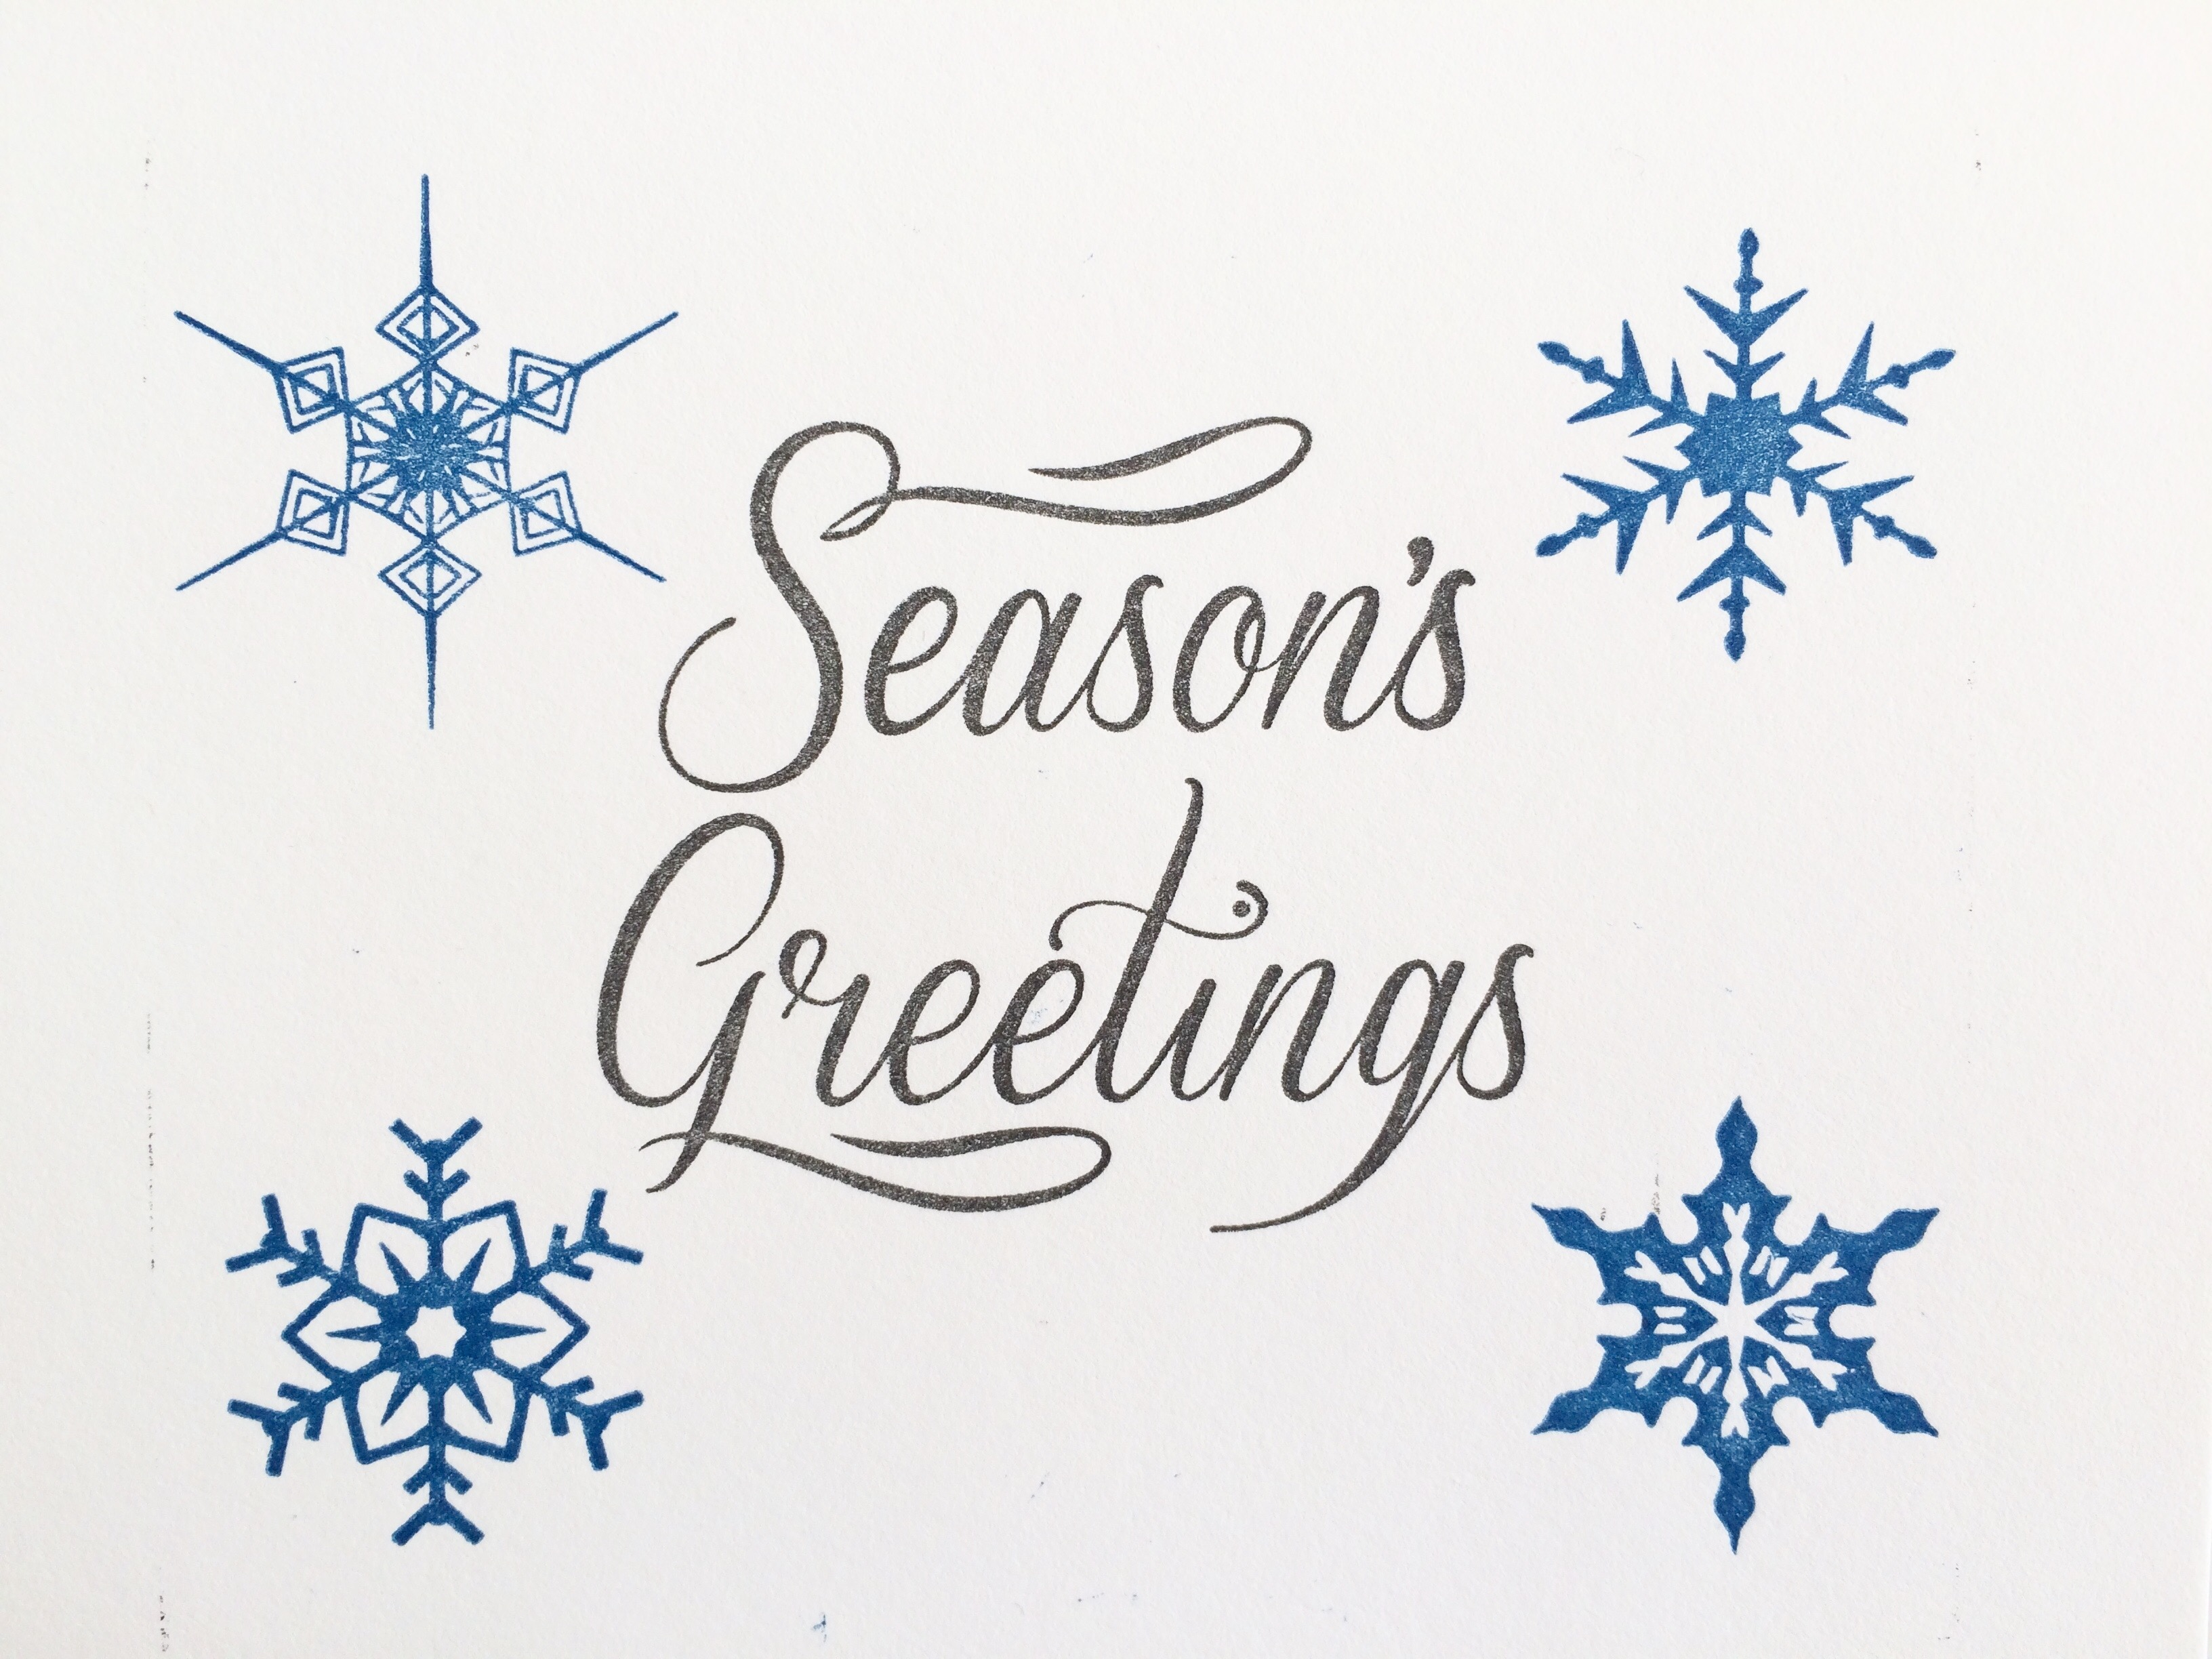 Seasons Greetings Holiday Cards Set Of 4 Sparks Gallery